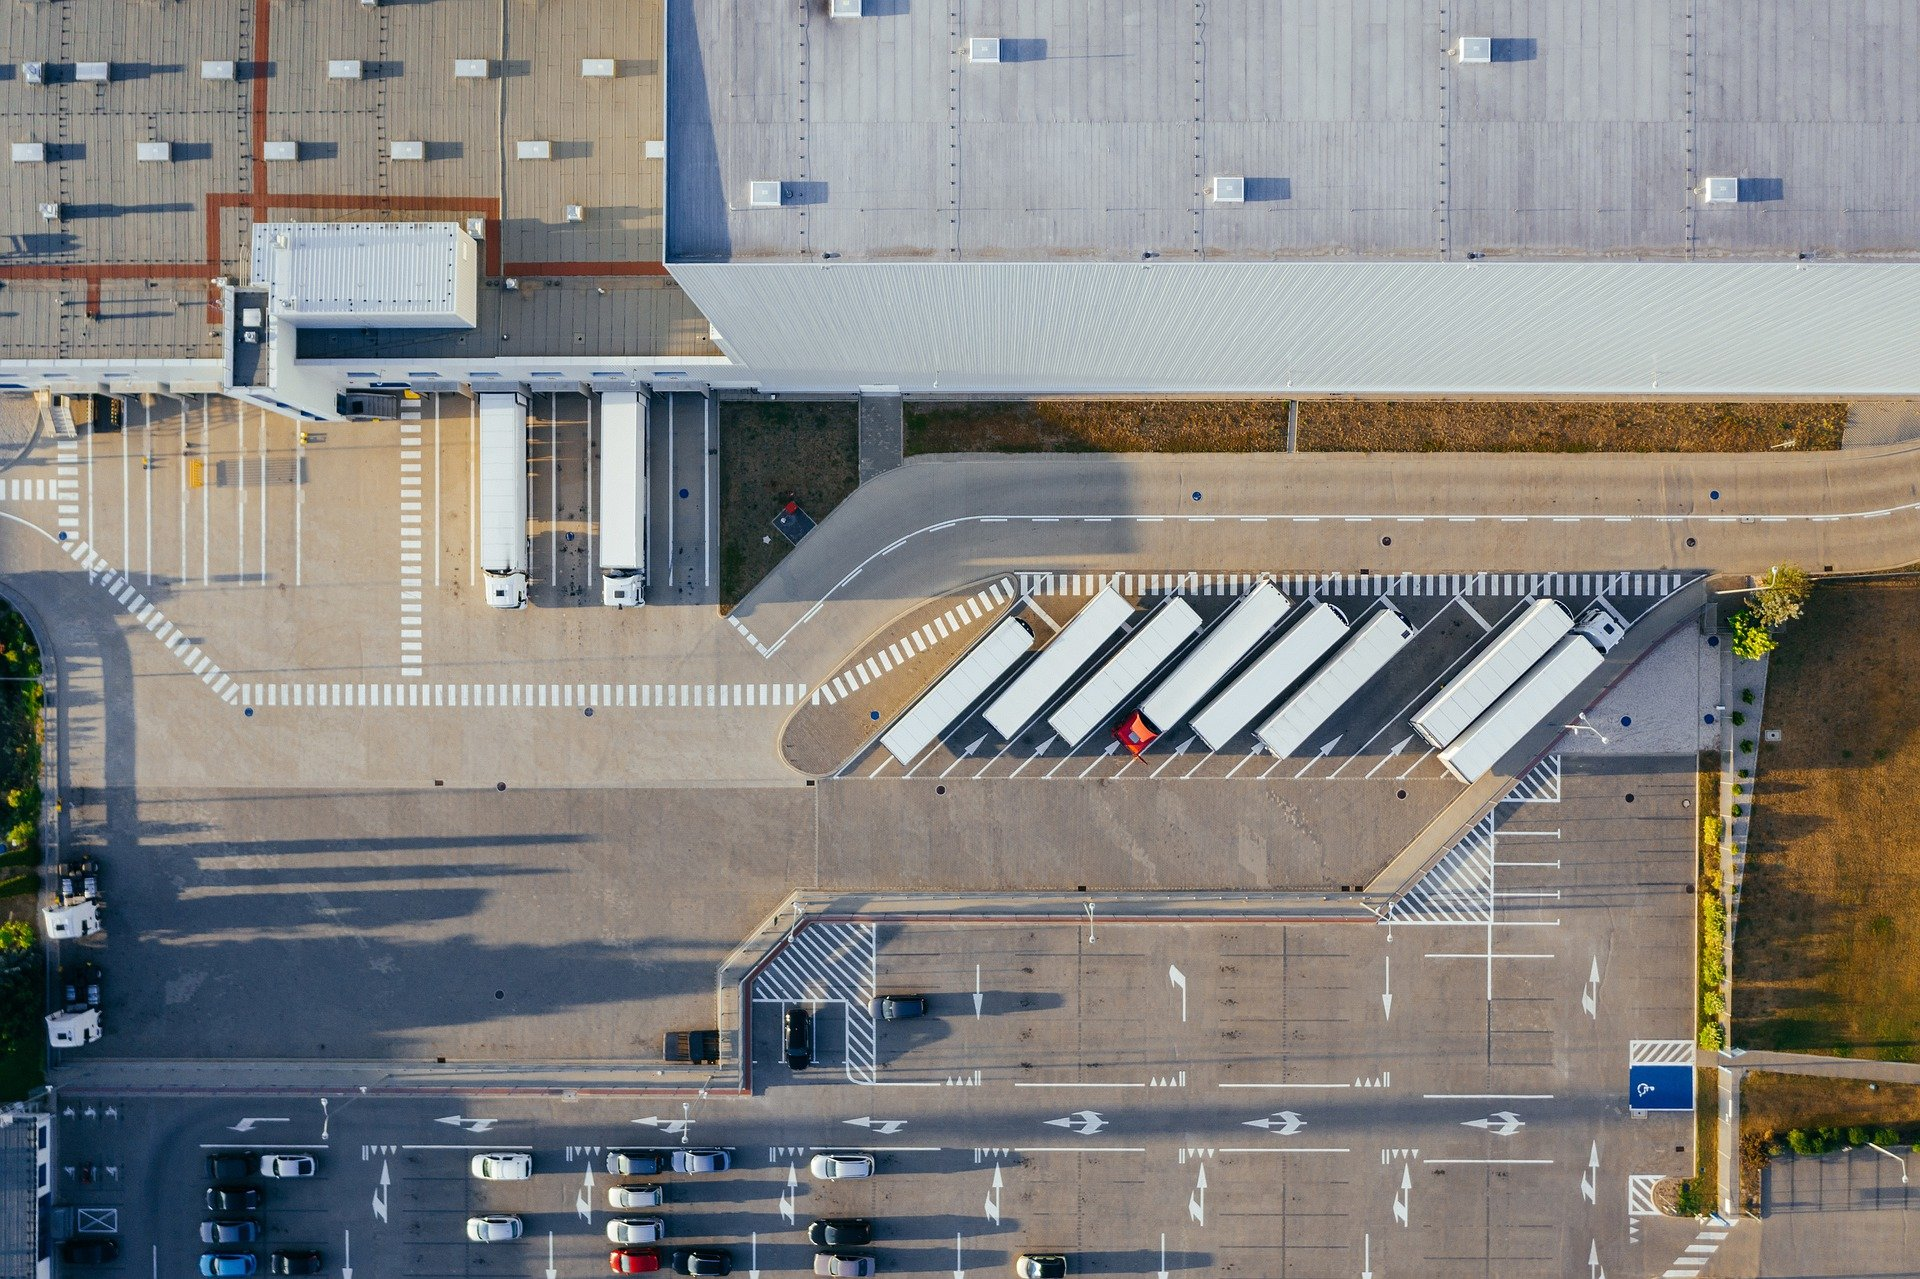 Aerial view of warehouses